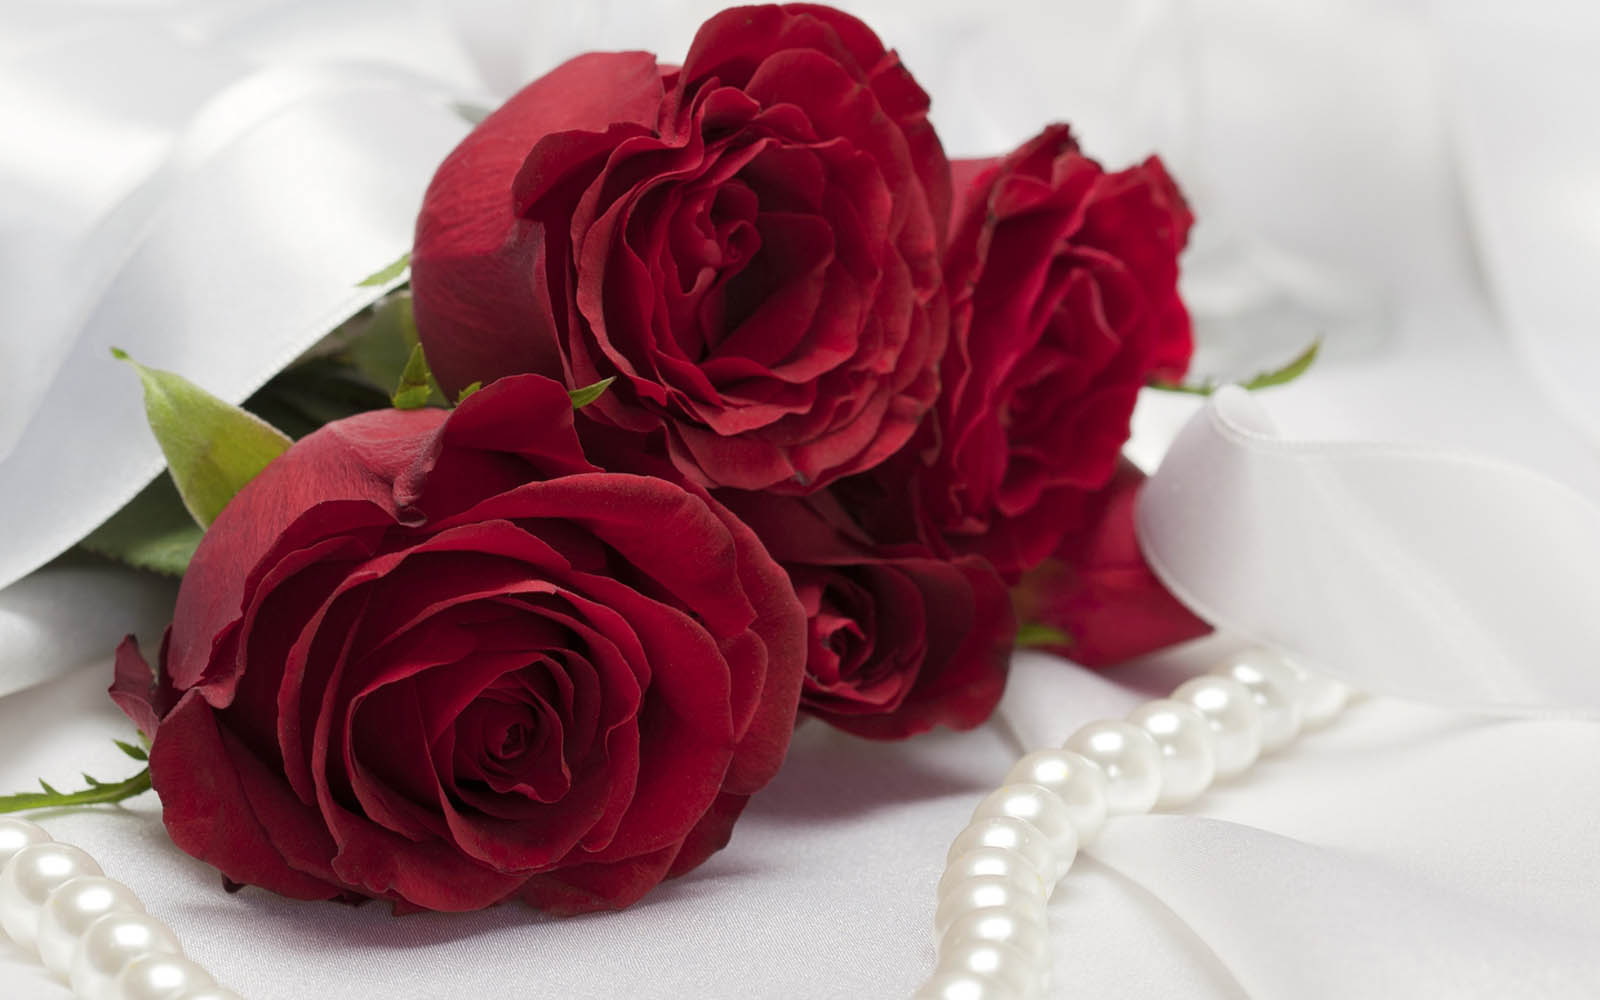 Wallpapers Red Rose Wallpapers HD Wallpapers Download Free Images Wallpaper [1000image.com]